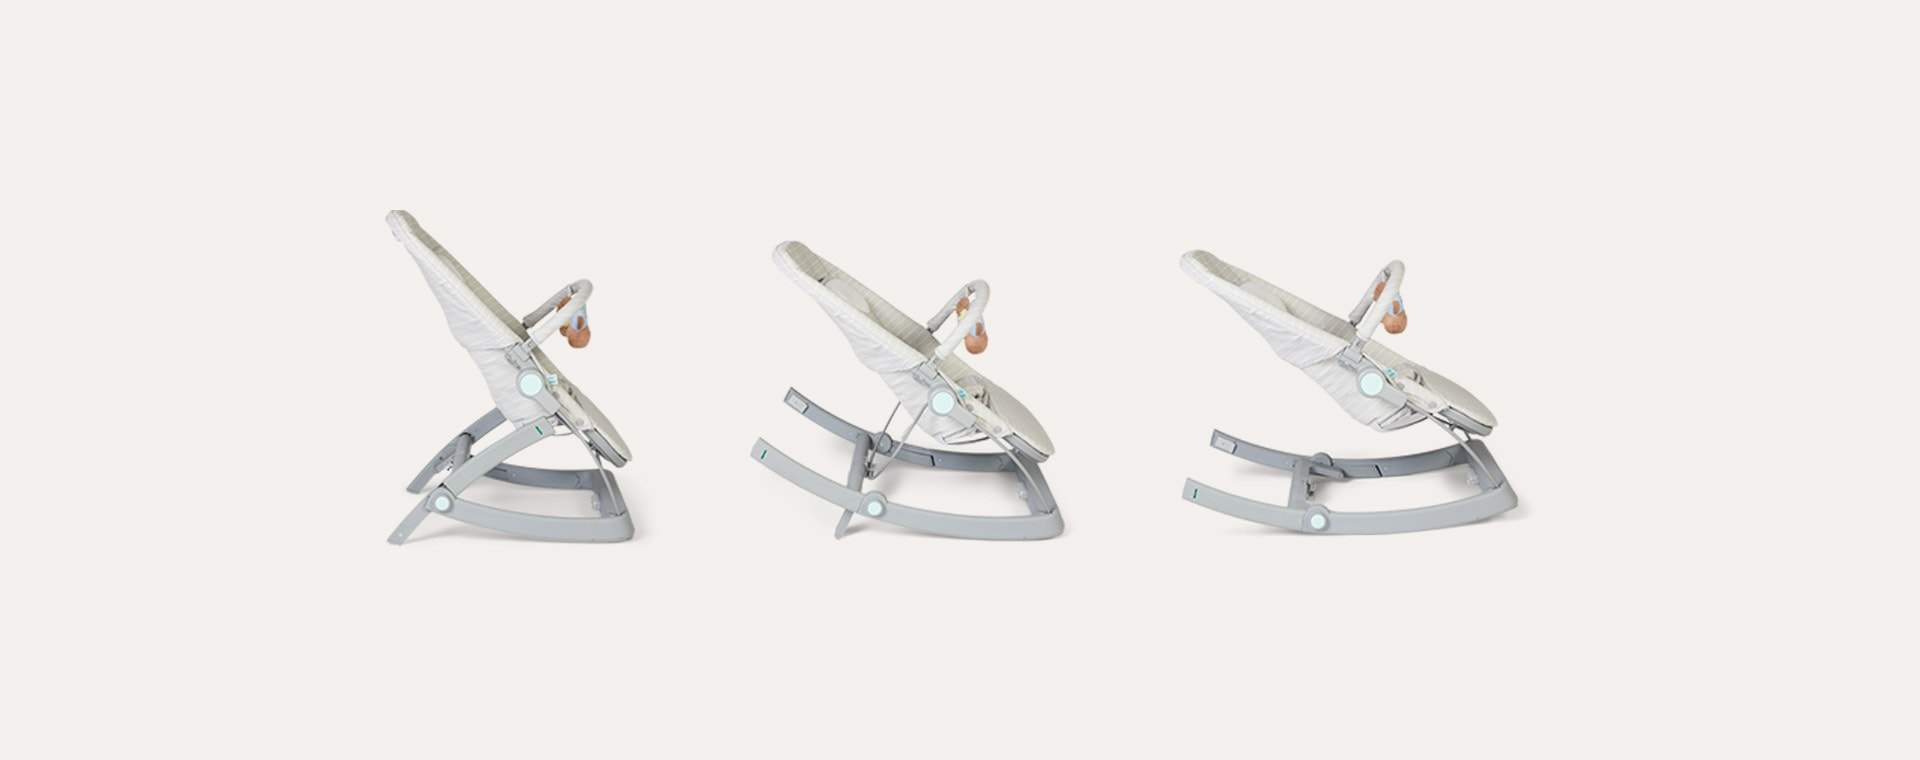 Grey aden + anais 3-in-1 Transition Seat